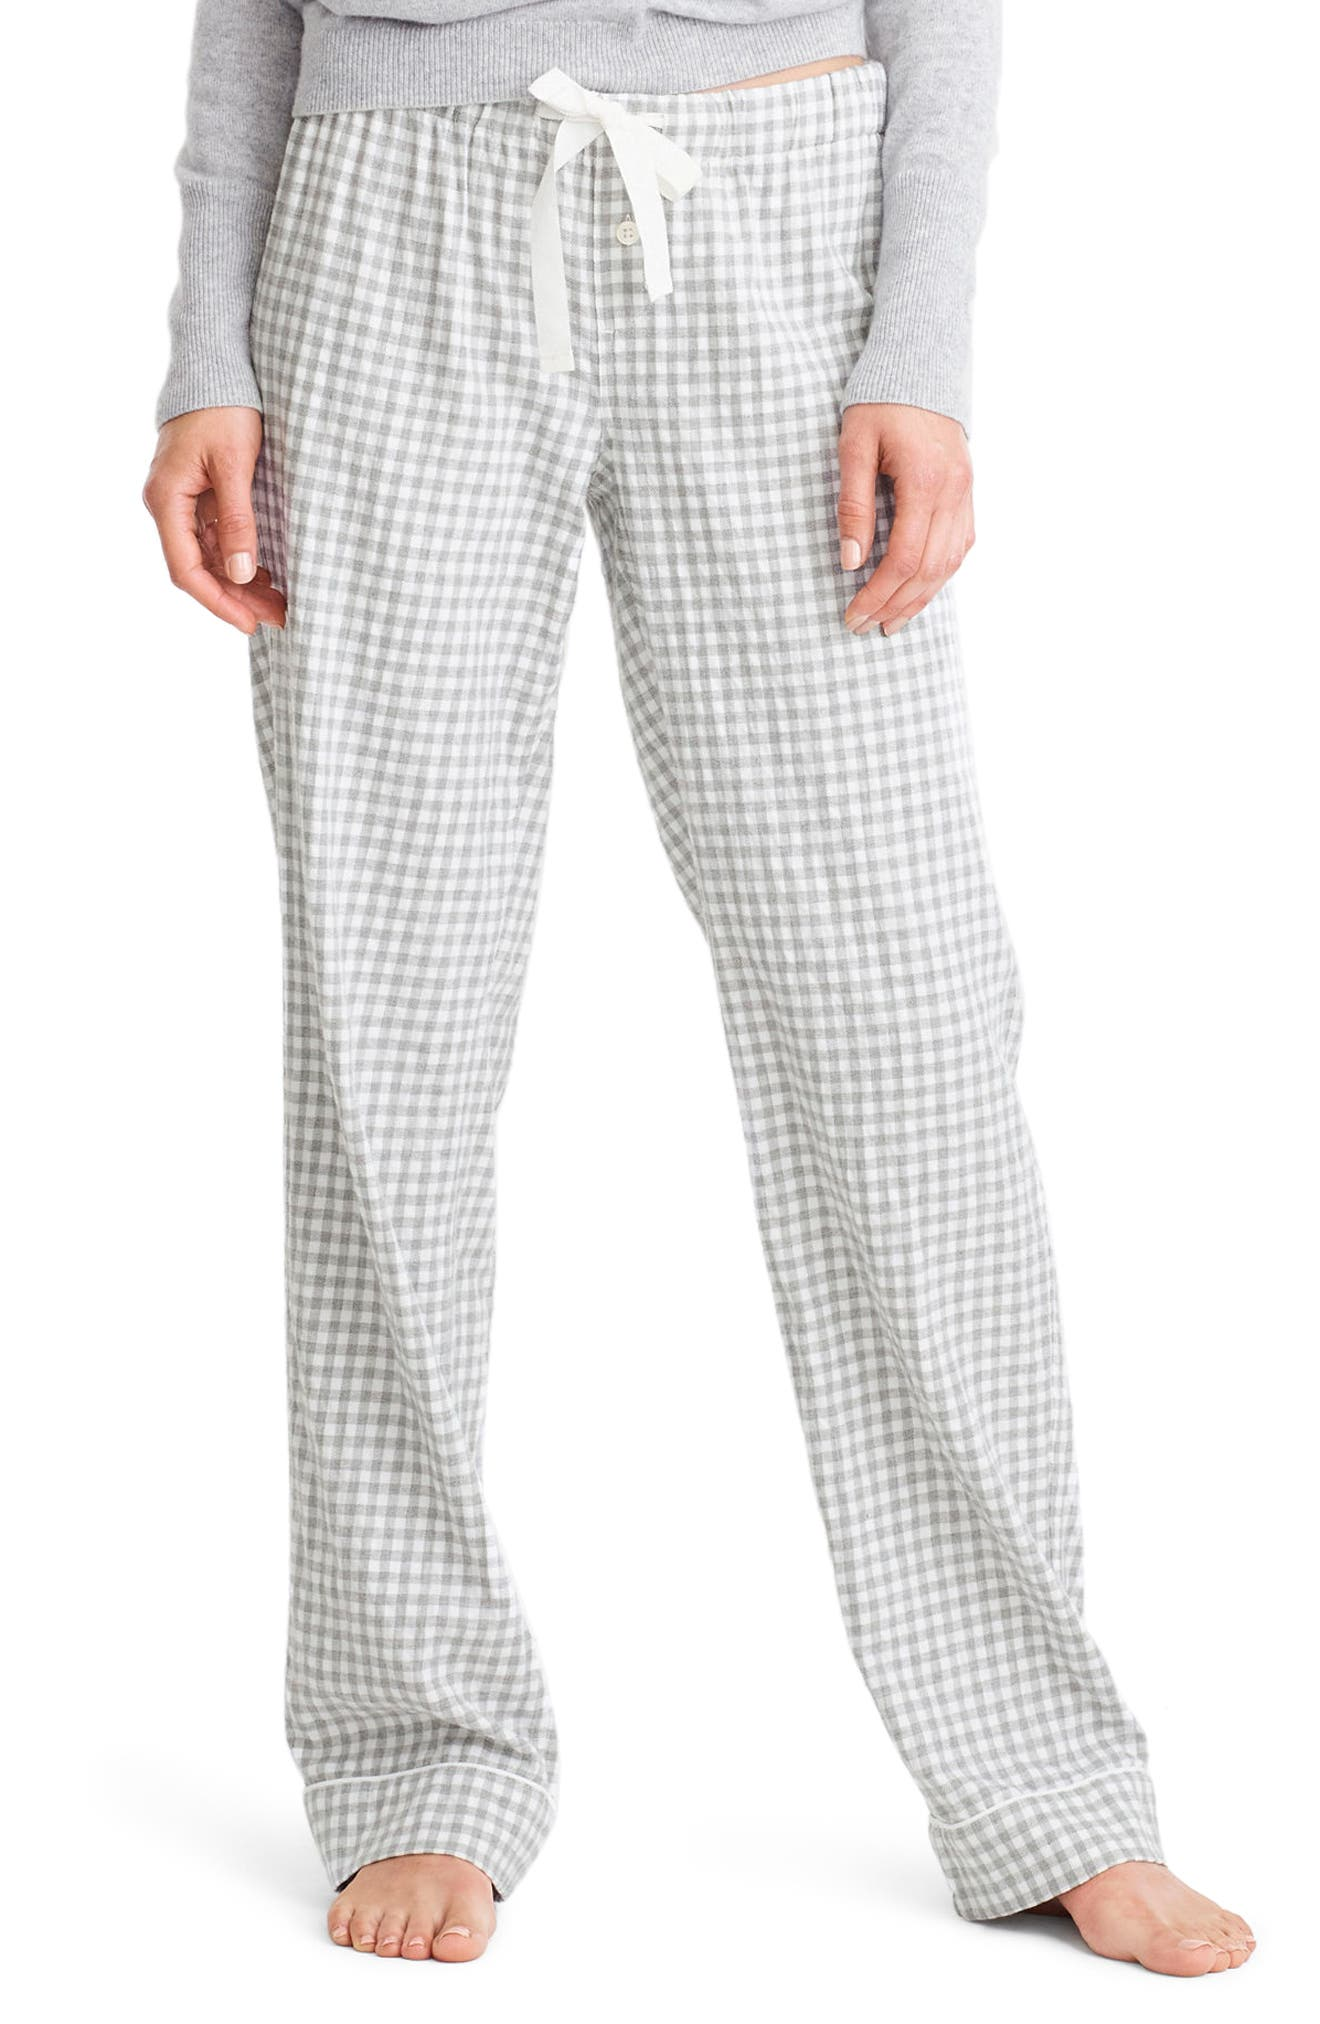 Main Image - J.Crew Grey Gingham Pajama Pants